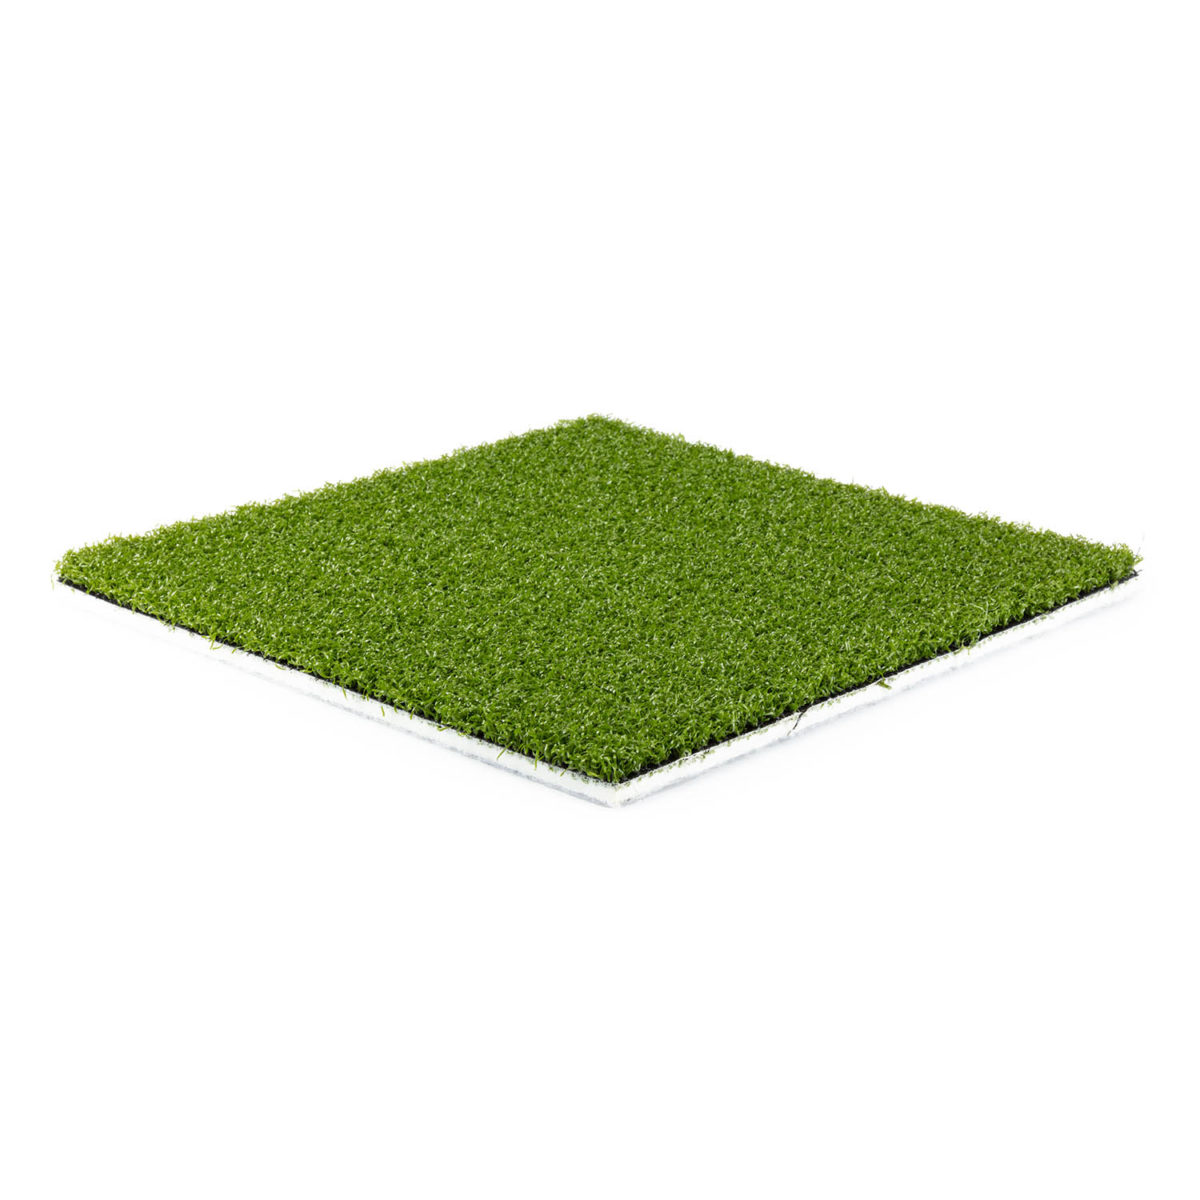 Rooftop Turf Overview